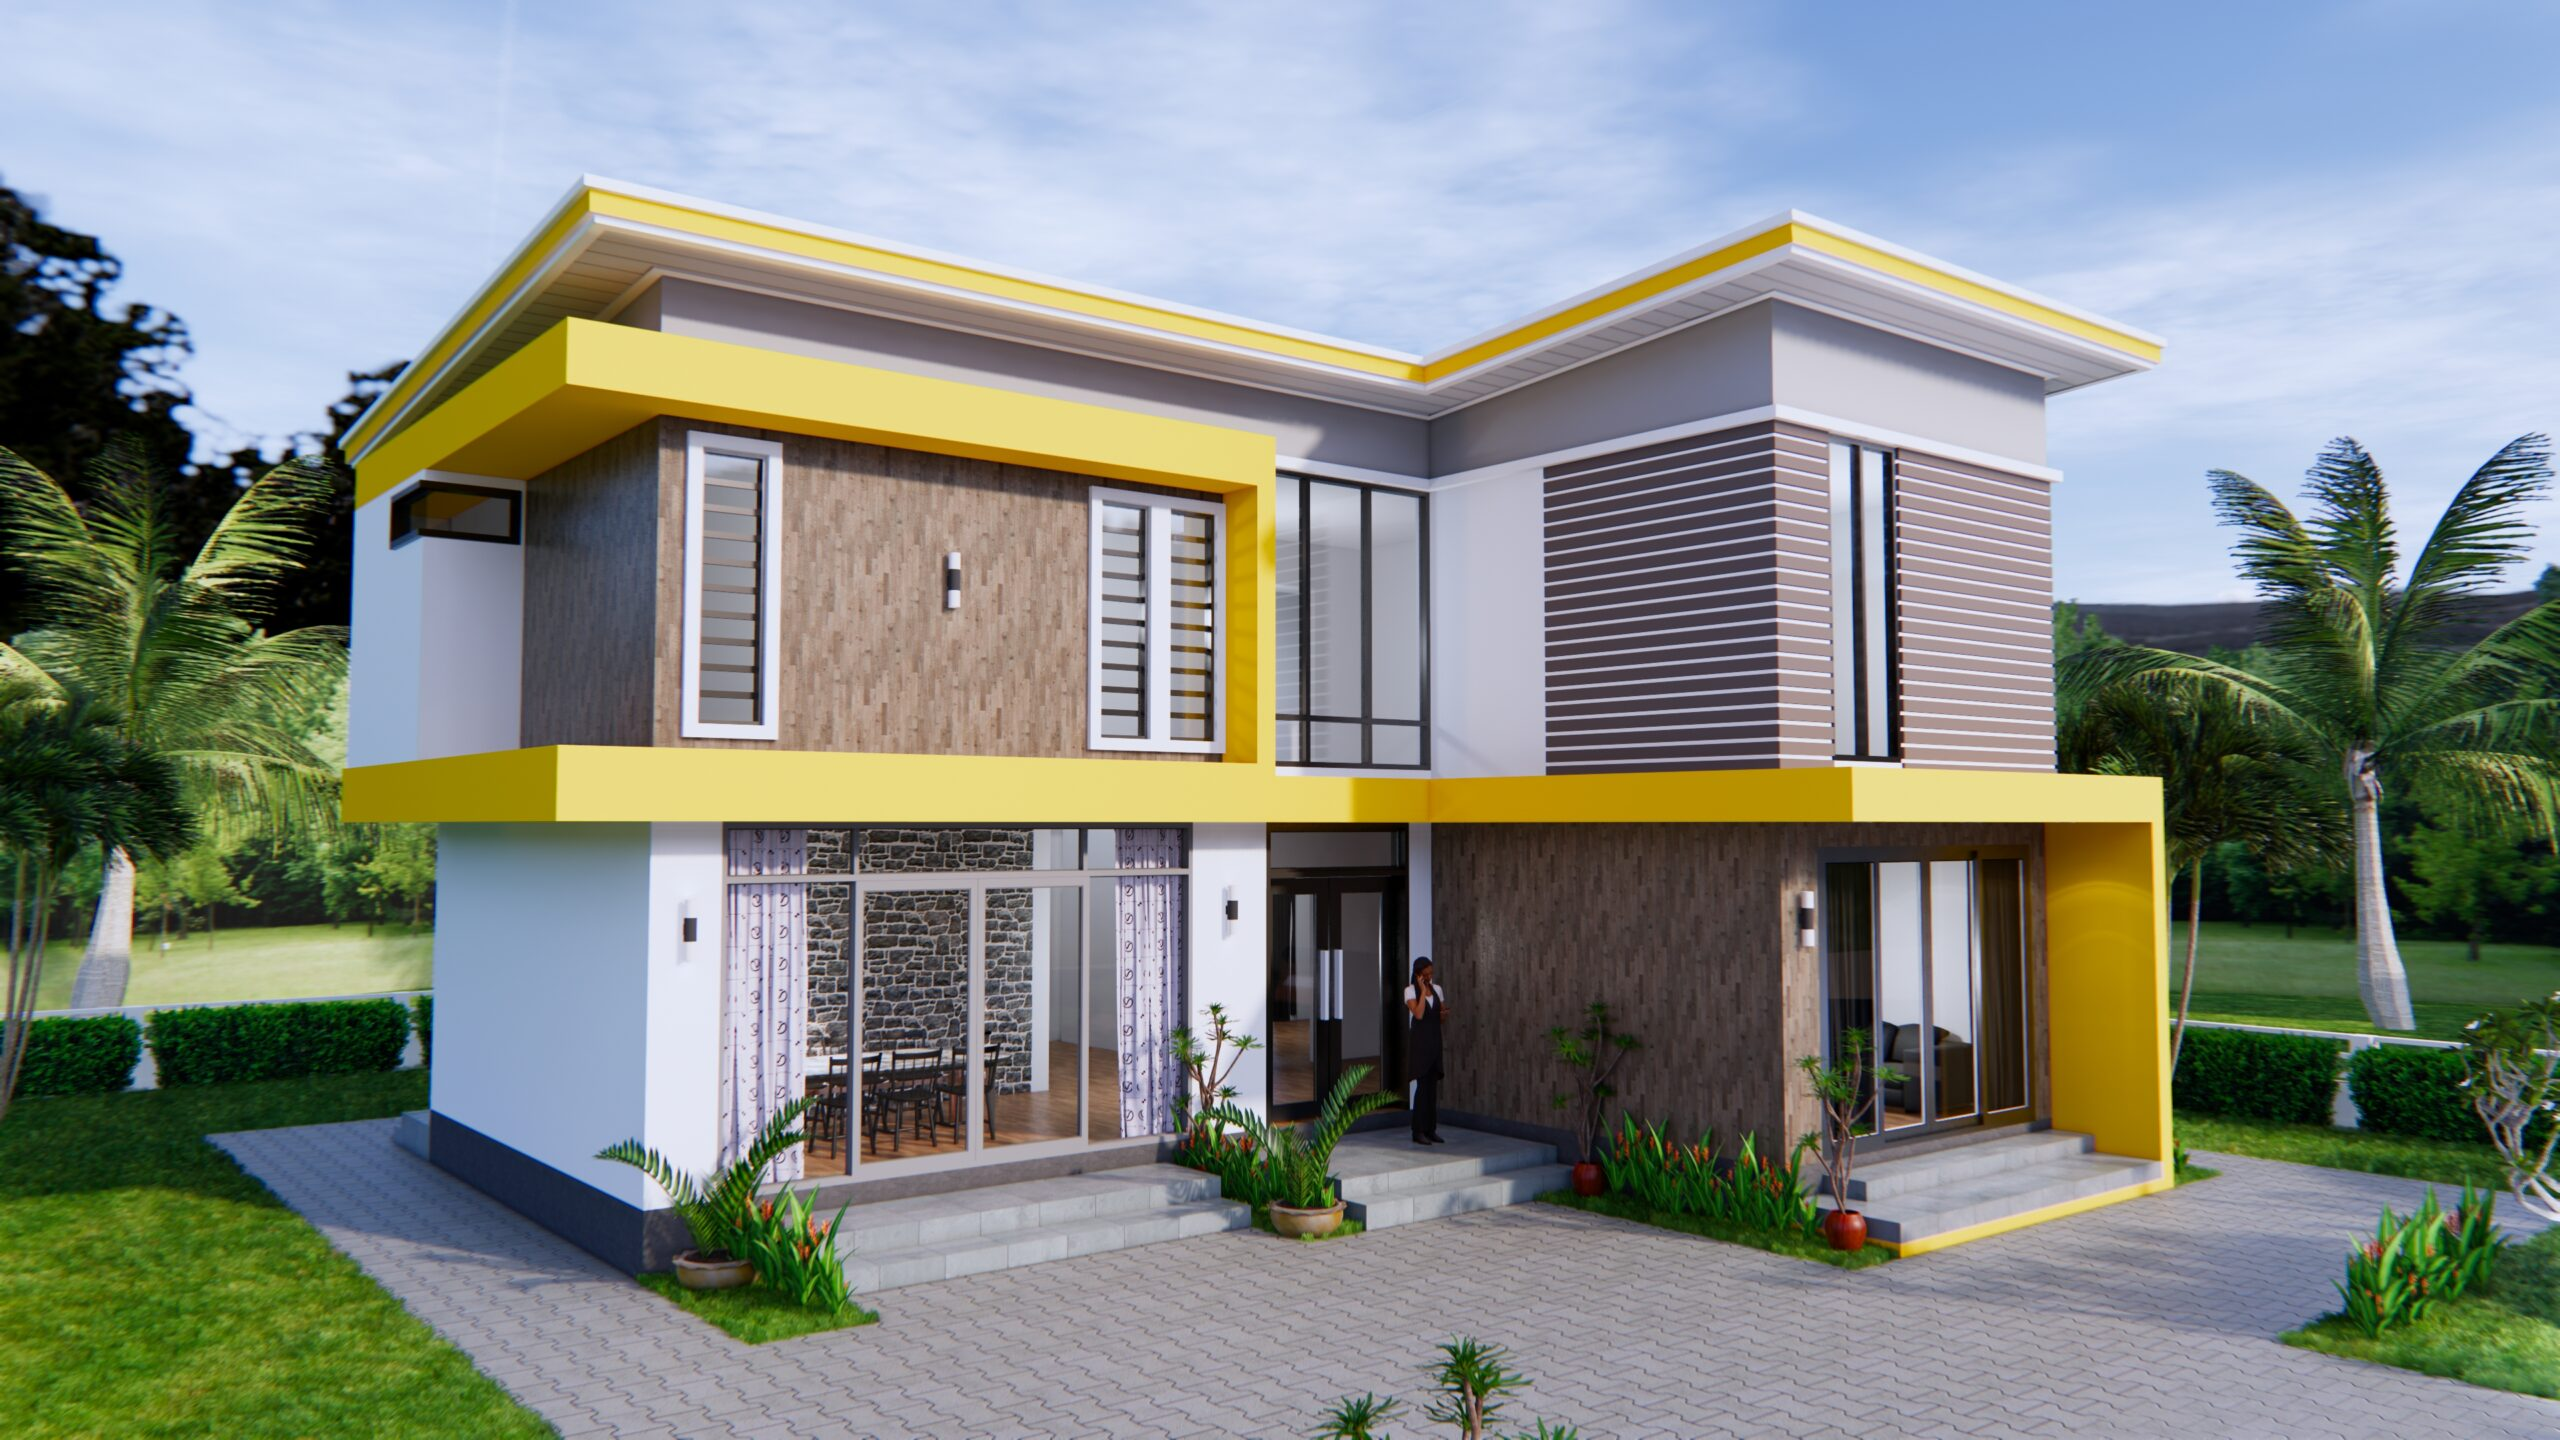 House Design 12.4x11 Meter 41x35 Feet 4 Beds 1-1